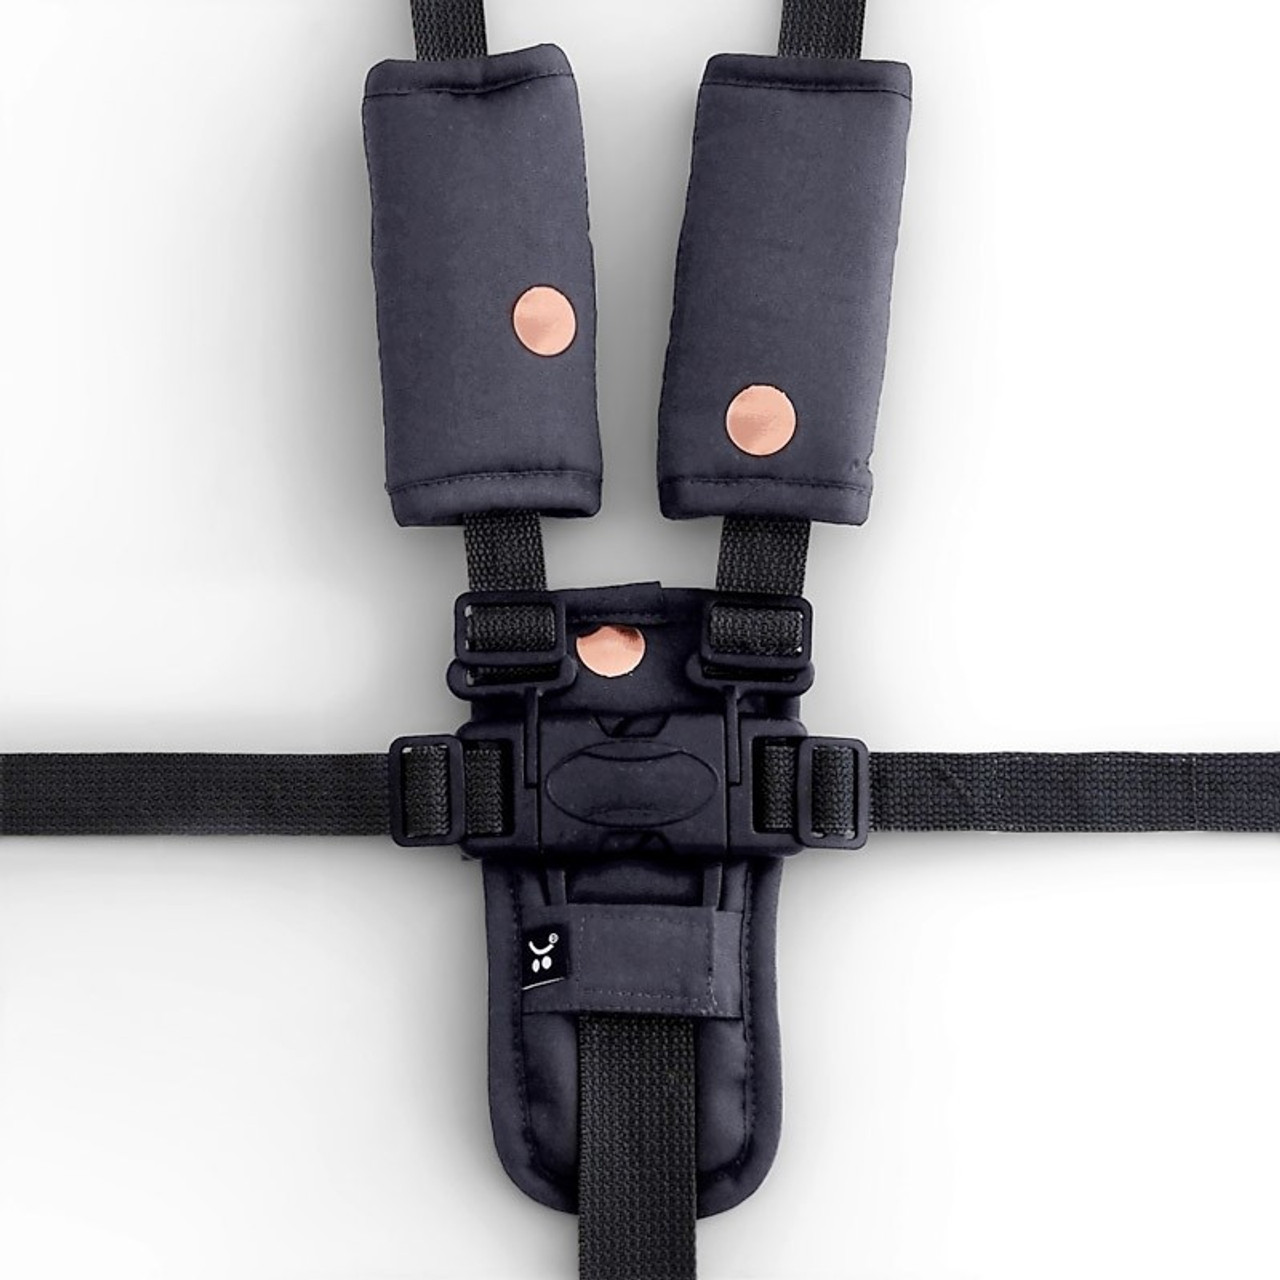 Outlook Get Foiled Pram Harness Cover Set - CHARCOAL